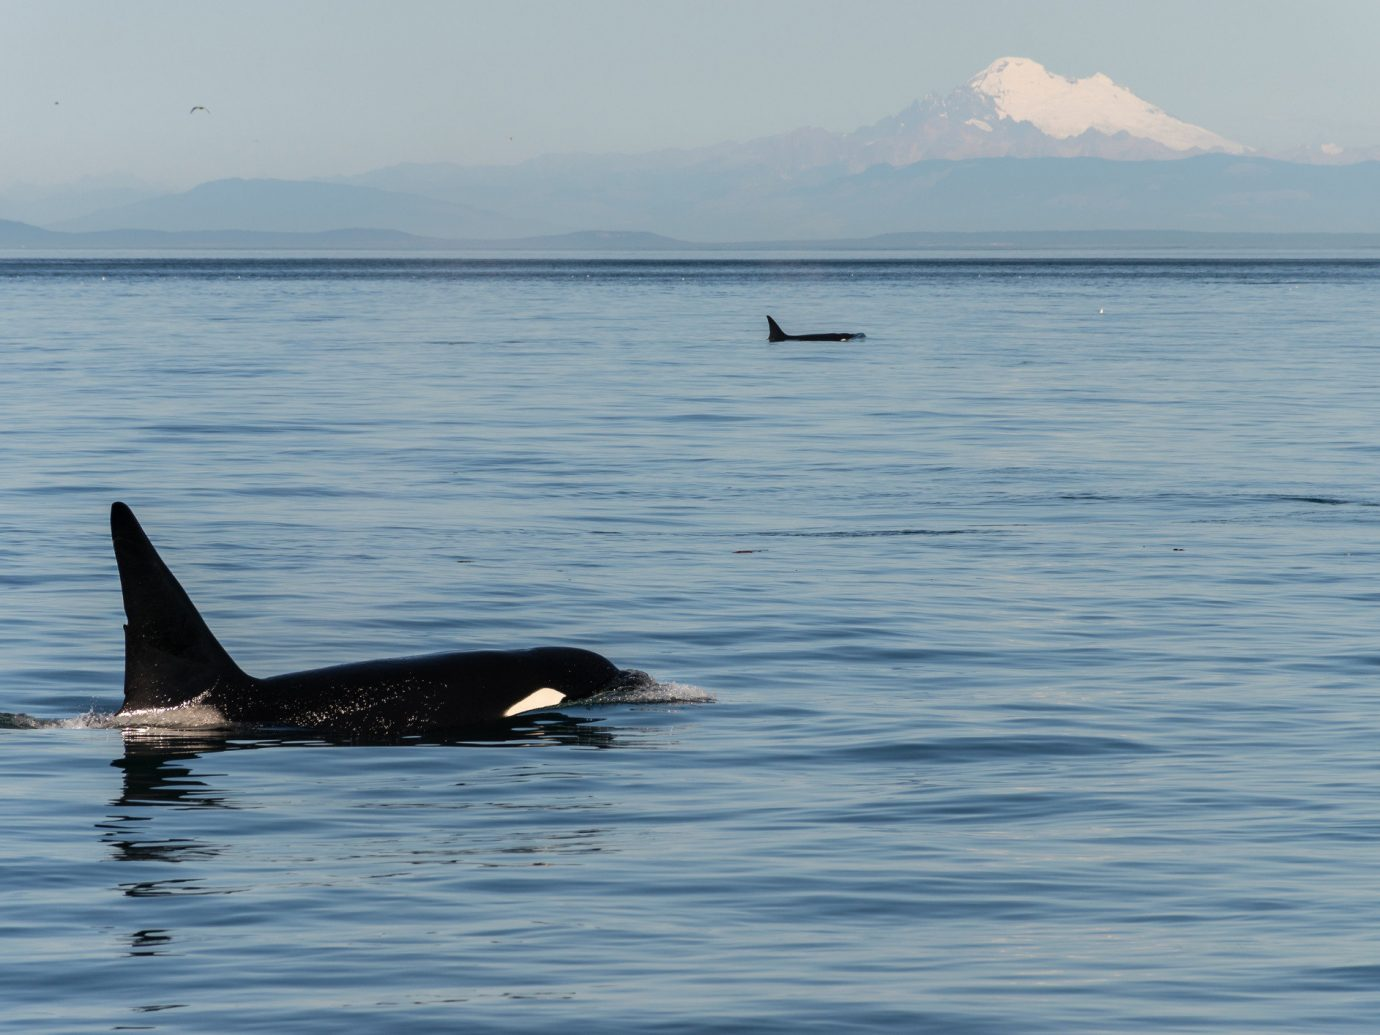 Trip Ideas water outdoor animal sky aquatic mammal mammal vertebrate marine mammal Lake whales dolphins and porpoises killer whale Sea Ocean whale floating dolphin swimming